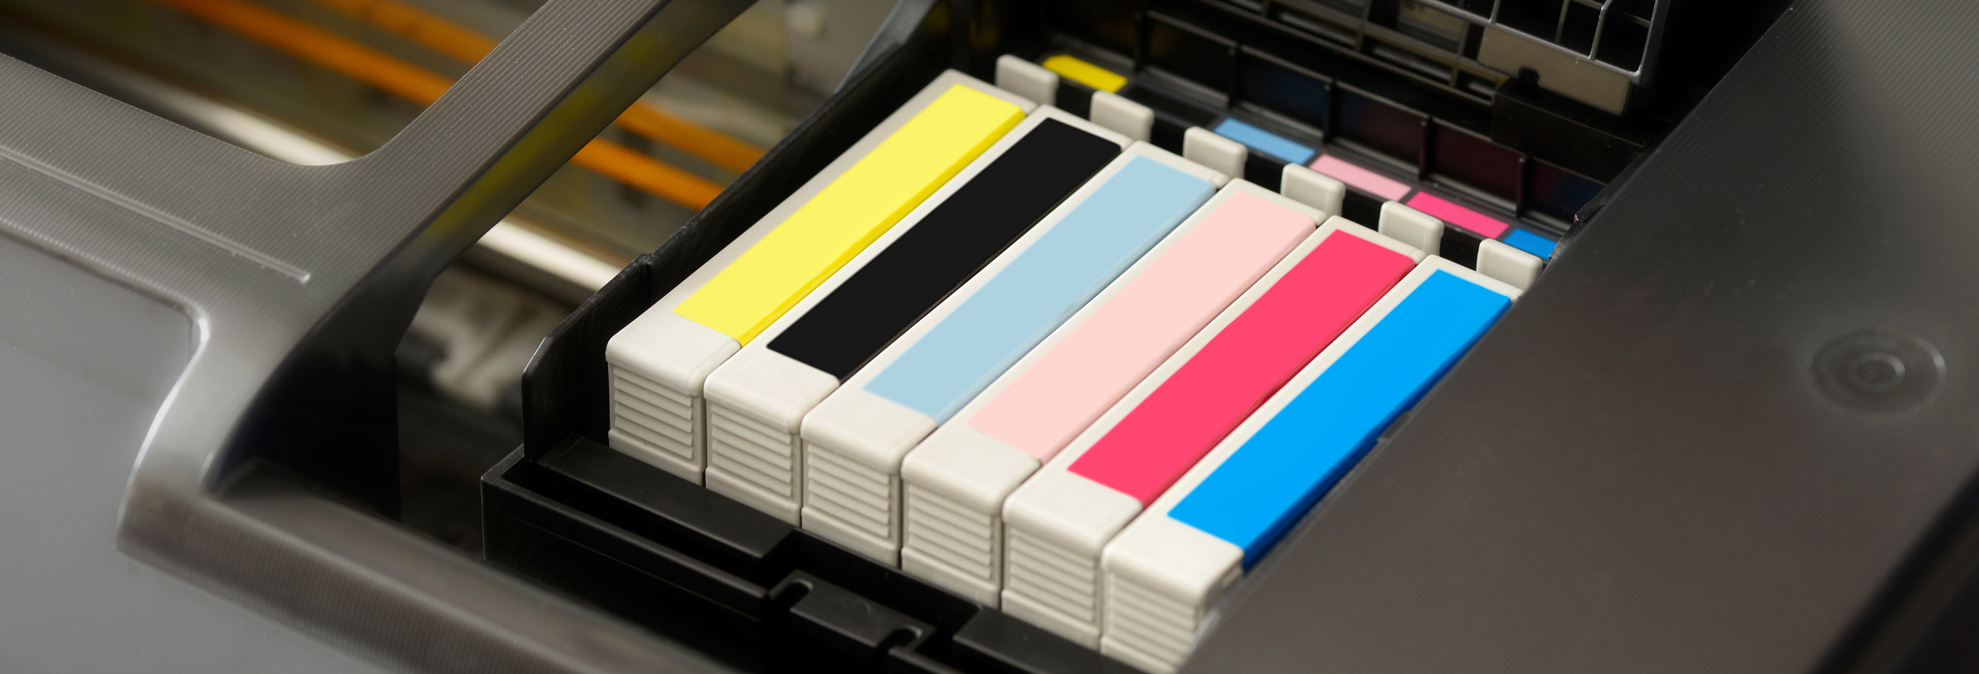 Ways To Save Money On Printer Ink Consumer Reports